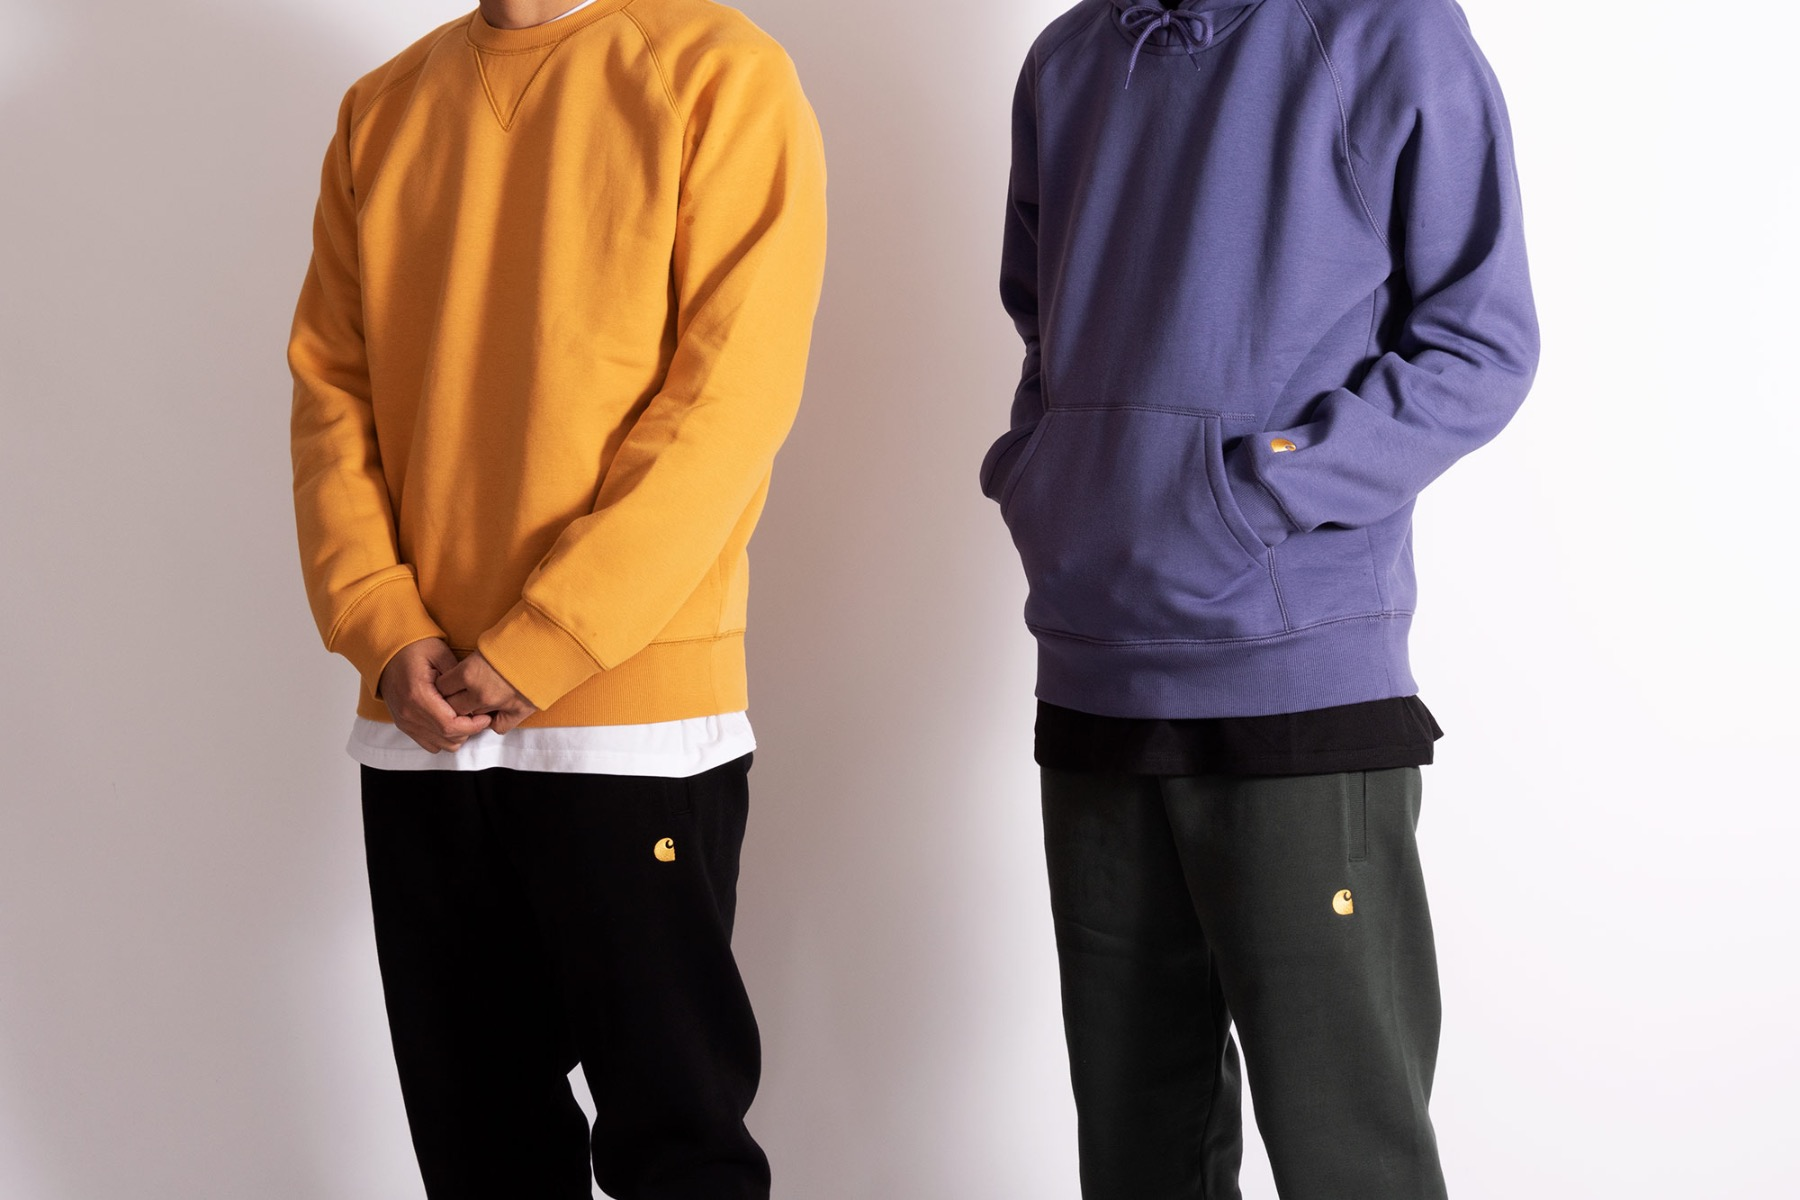 carhartt wip chase tracksuits in dark teal, cold viola, winter sun & black